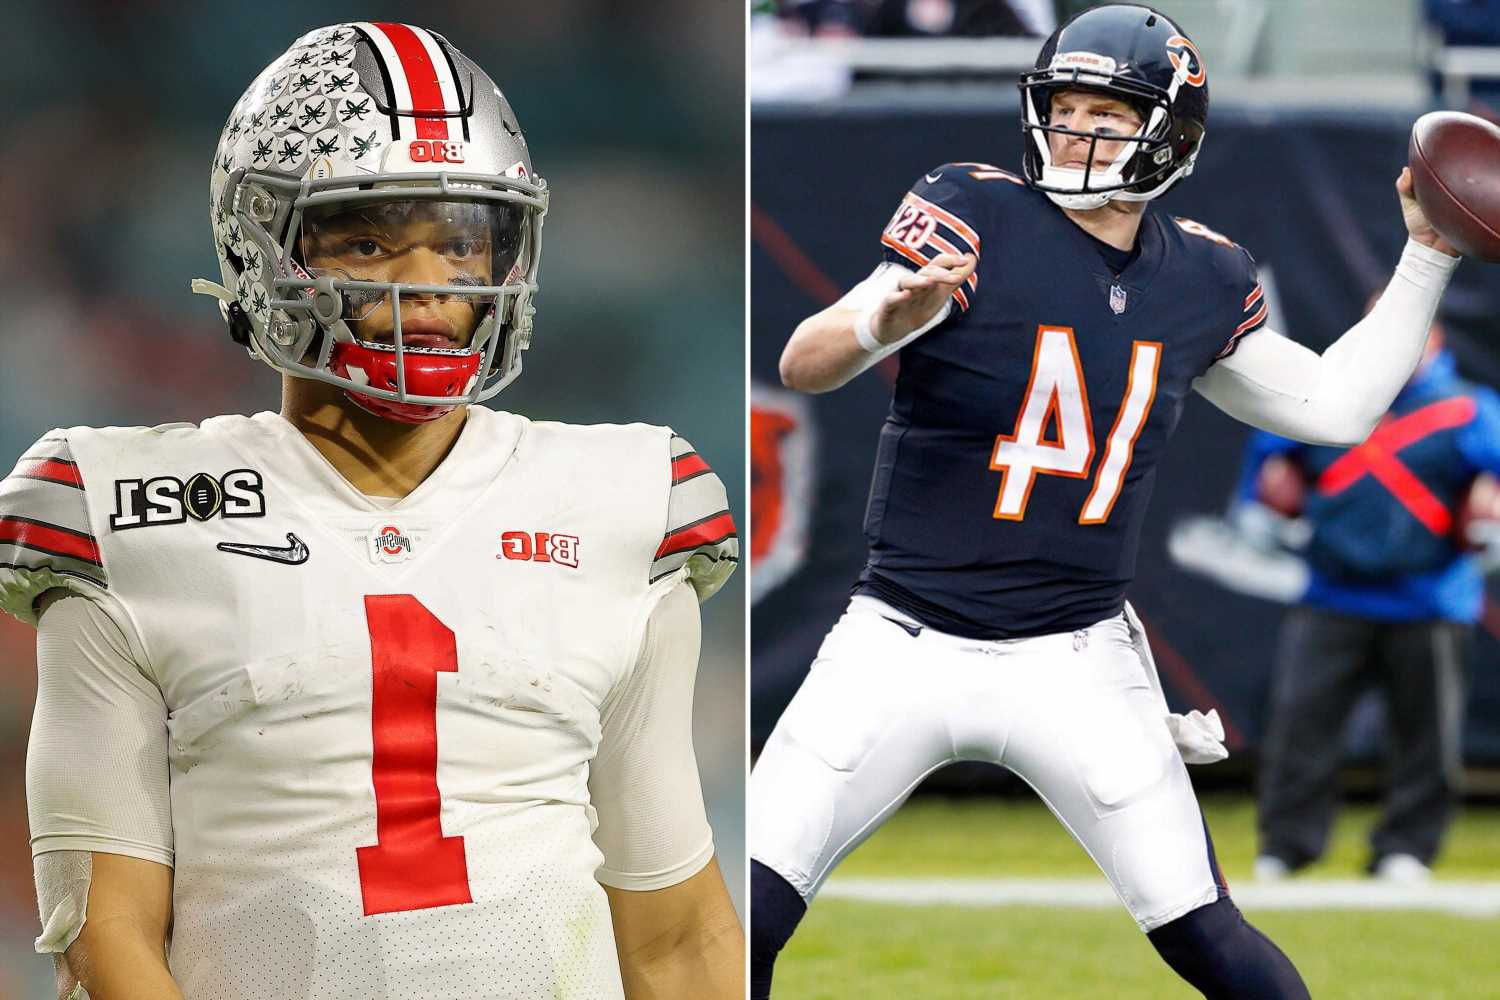 Bears' Andy Dalton 'QB1' tweet looks even worse after drafting Justin Fields